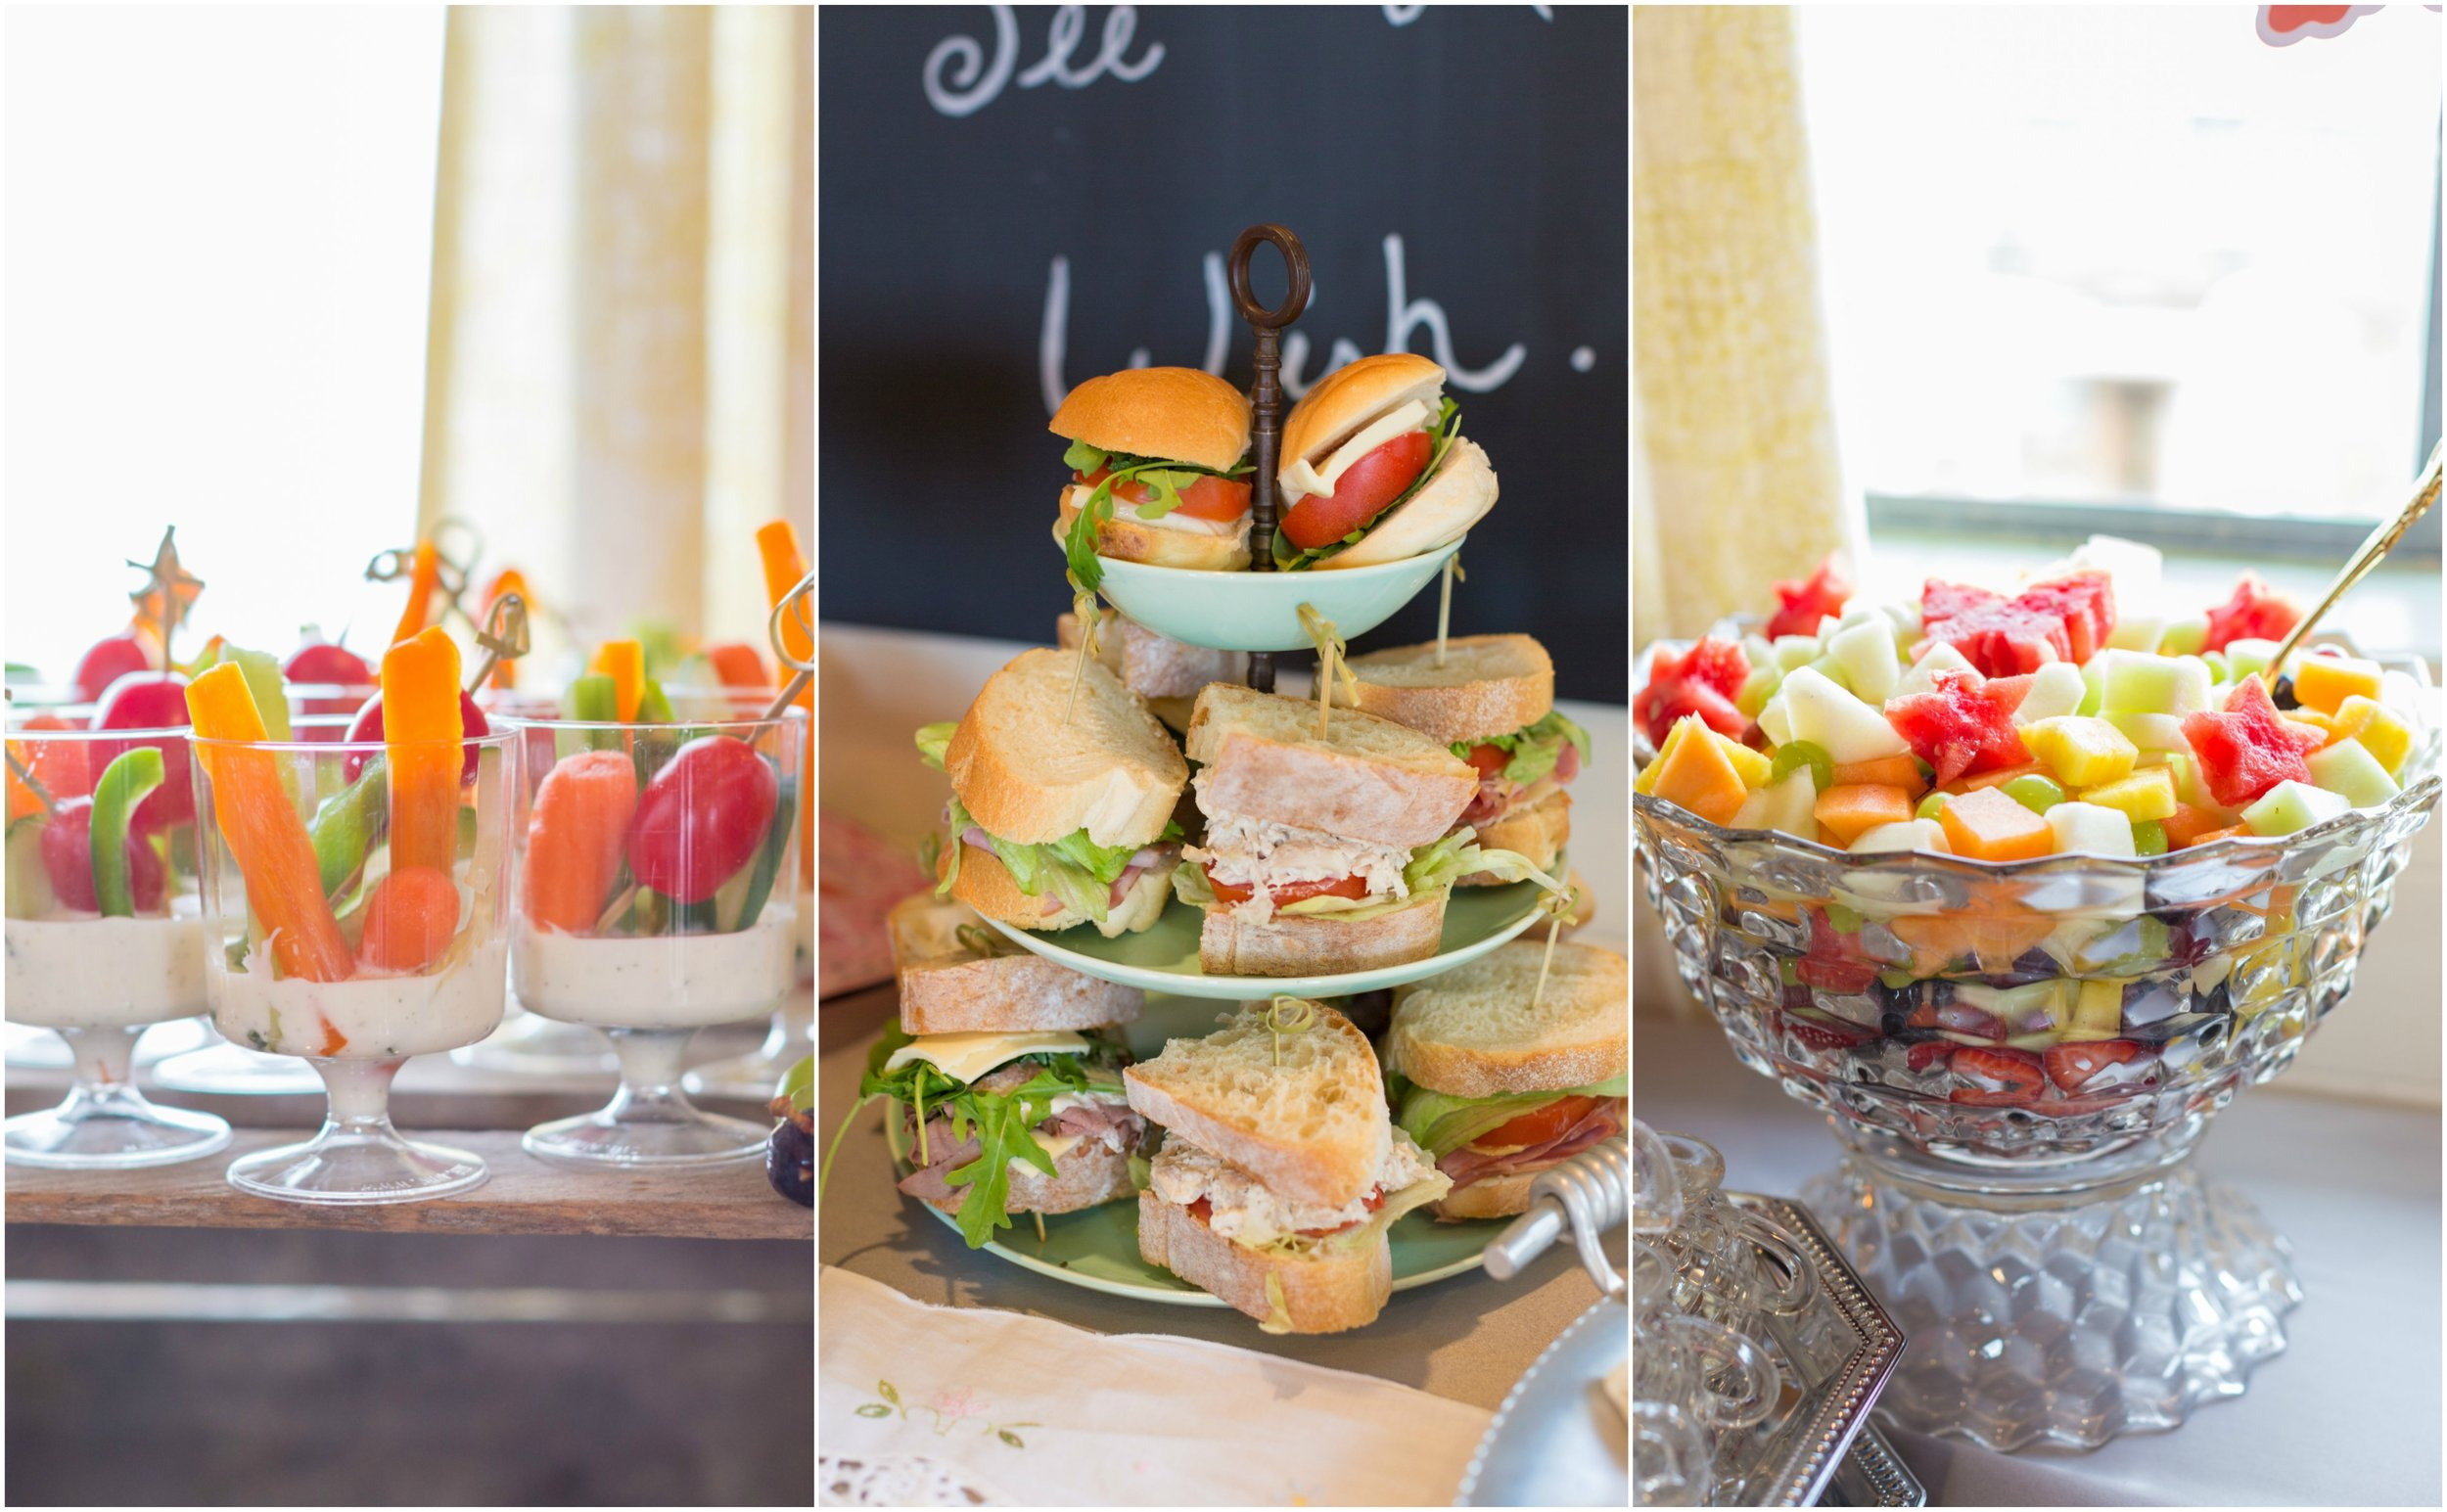 Mommy & Me tea party food display by Rode's Catering